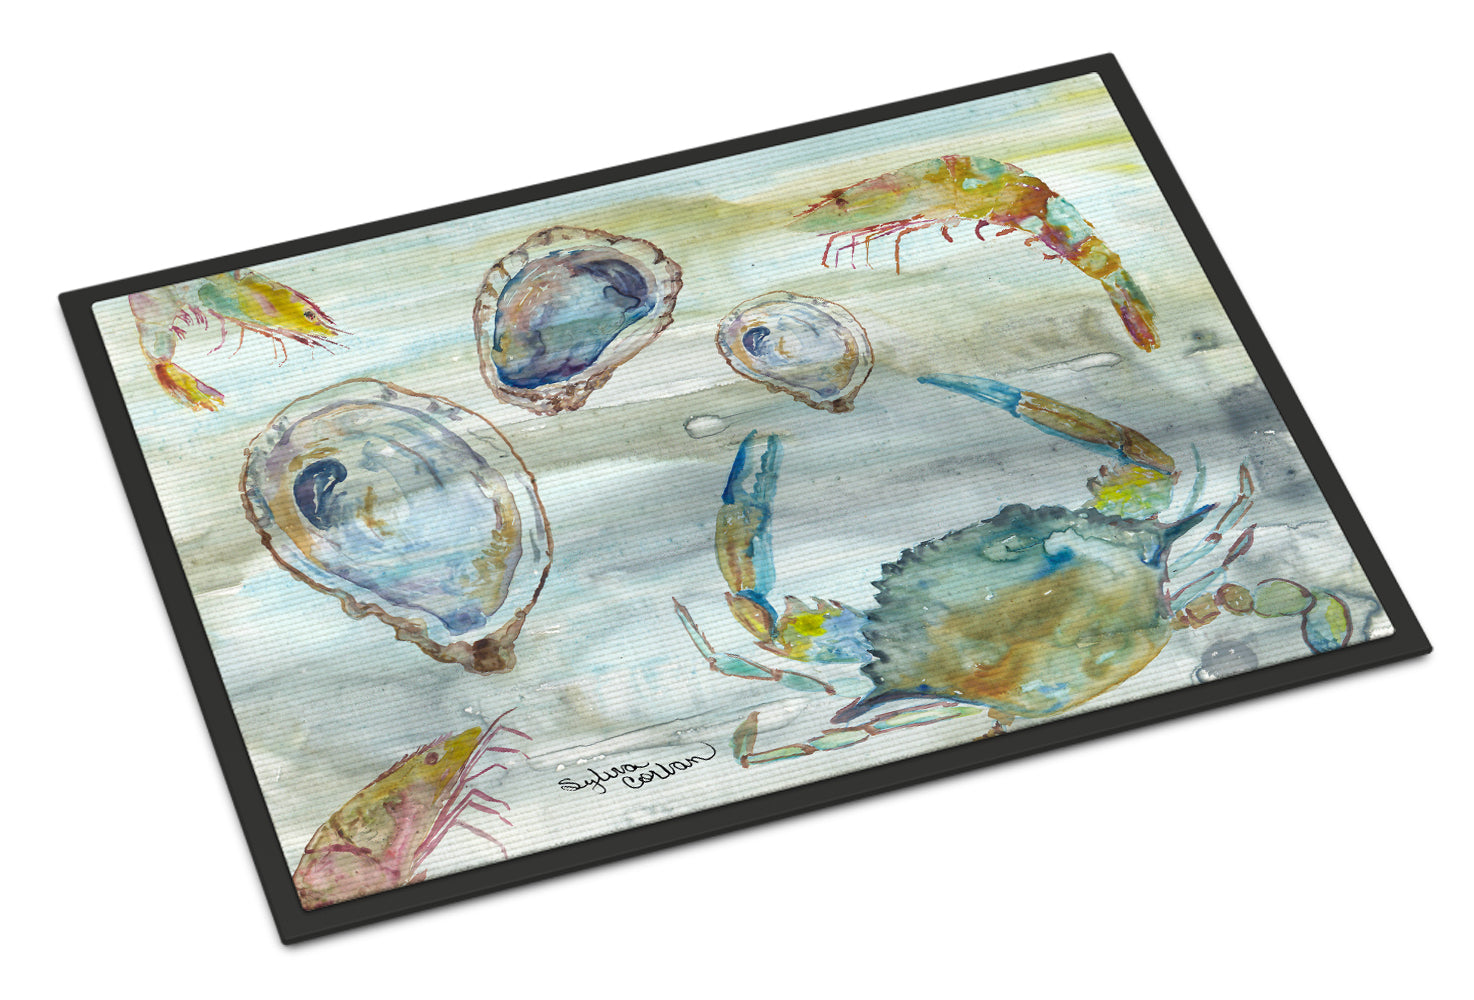 Crab, Shrimp and Oyster Watercolor Indoor or Outdoor Mat 18x27 SC2010MAT by Caroline's Treasures